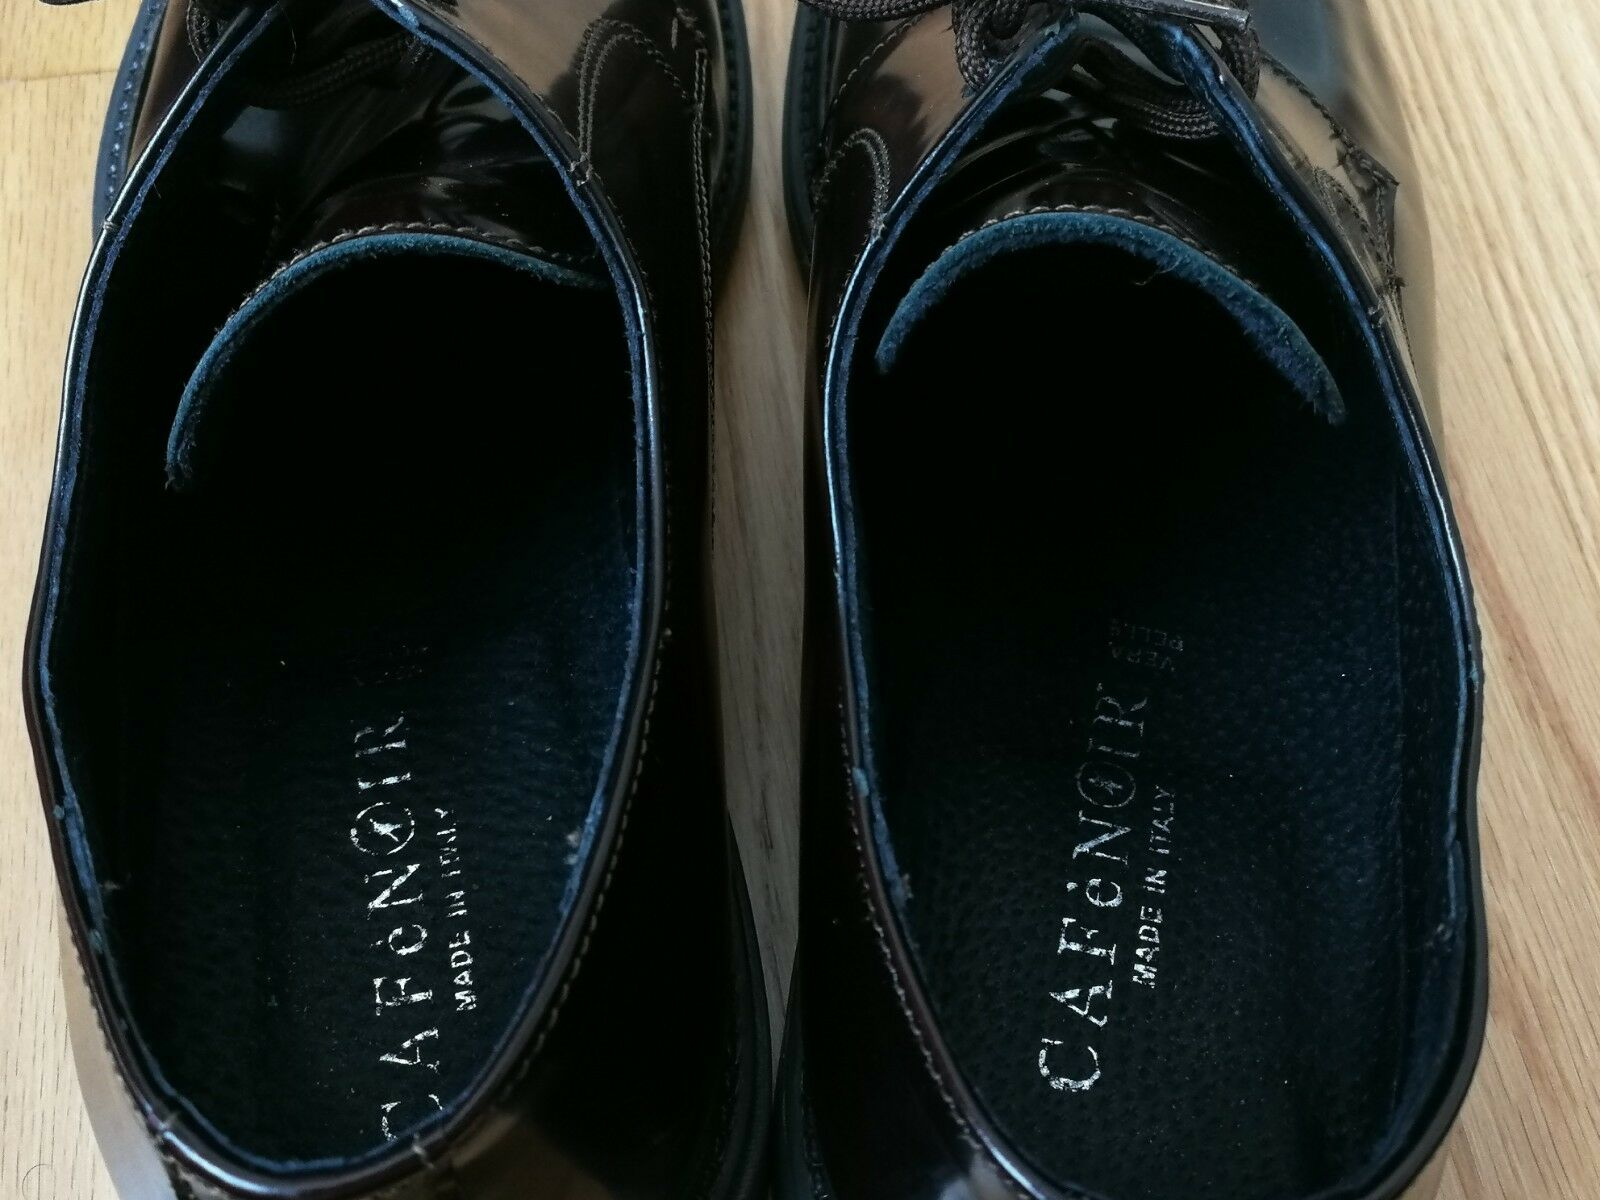 CAFEnero Uomo Marrone patent leather leather leather lace-up scarpe Dimensione 10 in excellent condition 5acddd